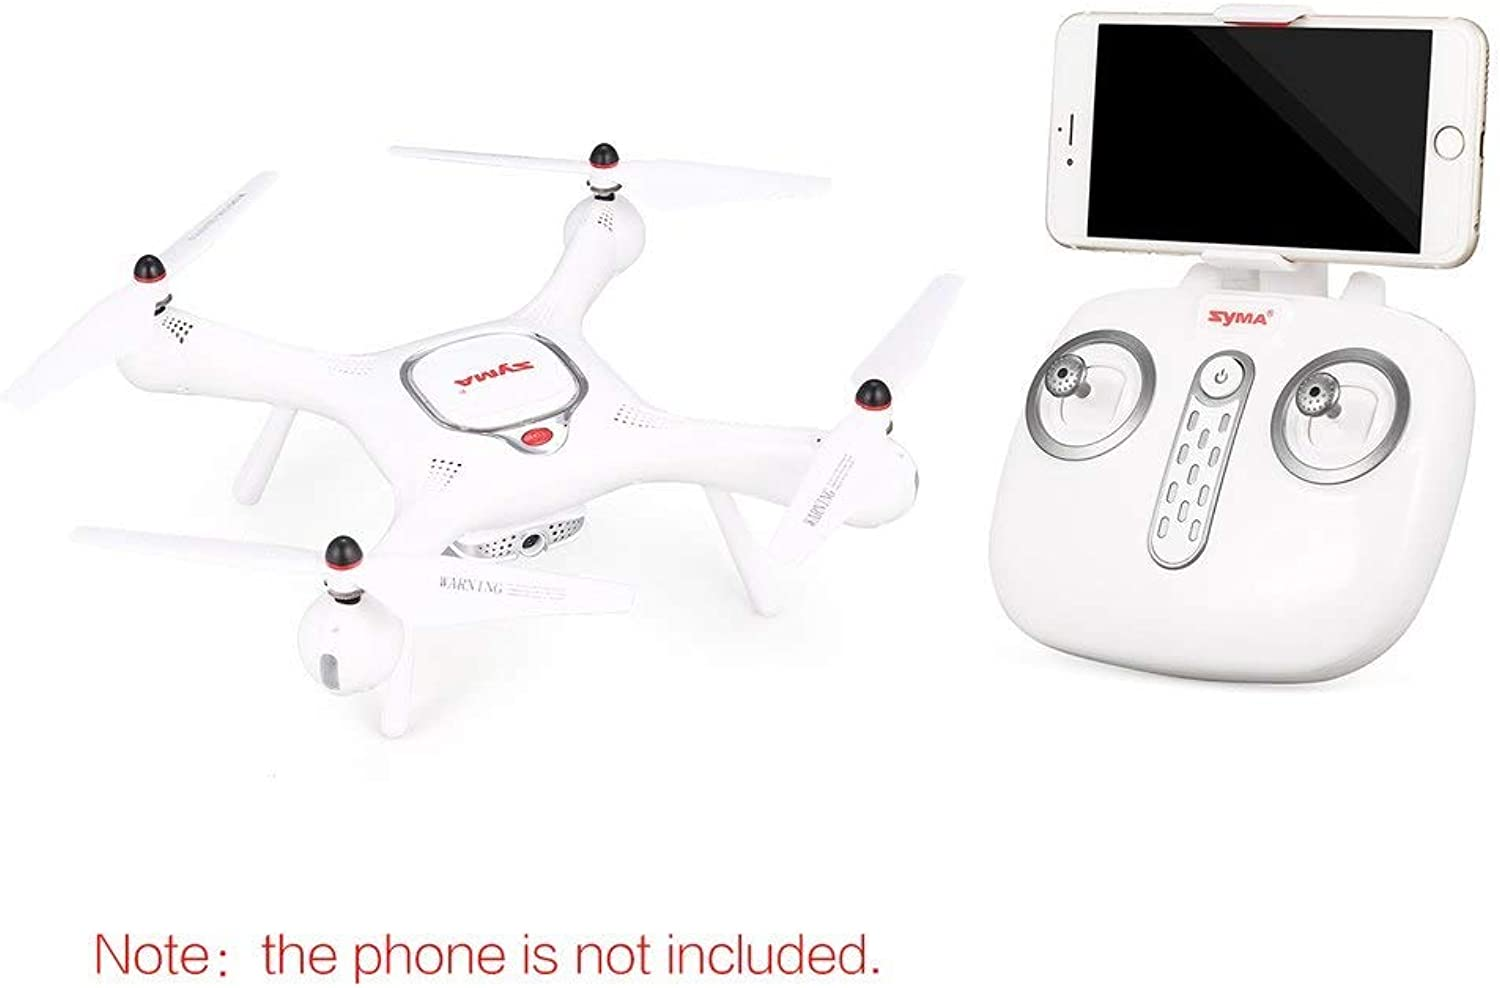 Generic SYMA X25PRO GPS RC Drone with Adjustable 720P HD WiFi Camera Follow Me Flight Plan Altitude Hold RC Quadcopter Helicopter Drons White